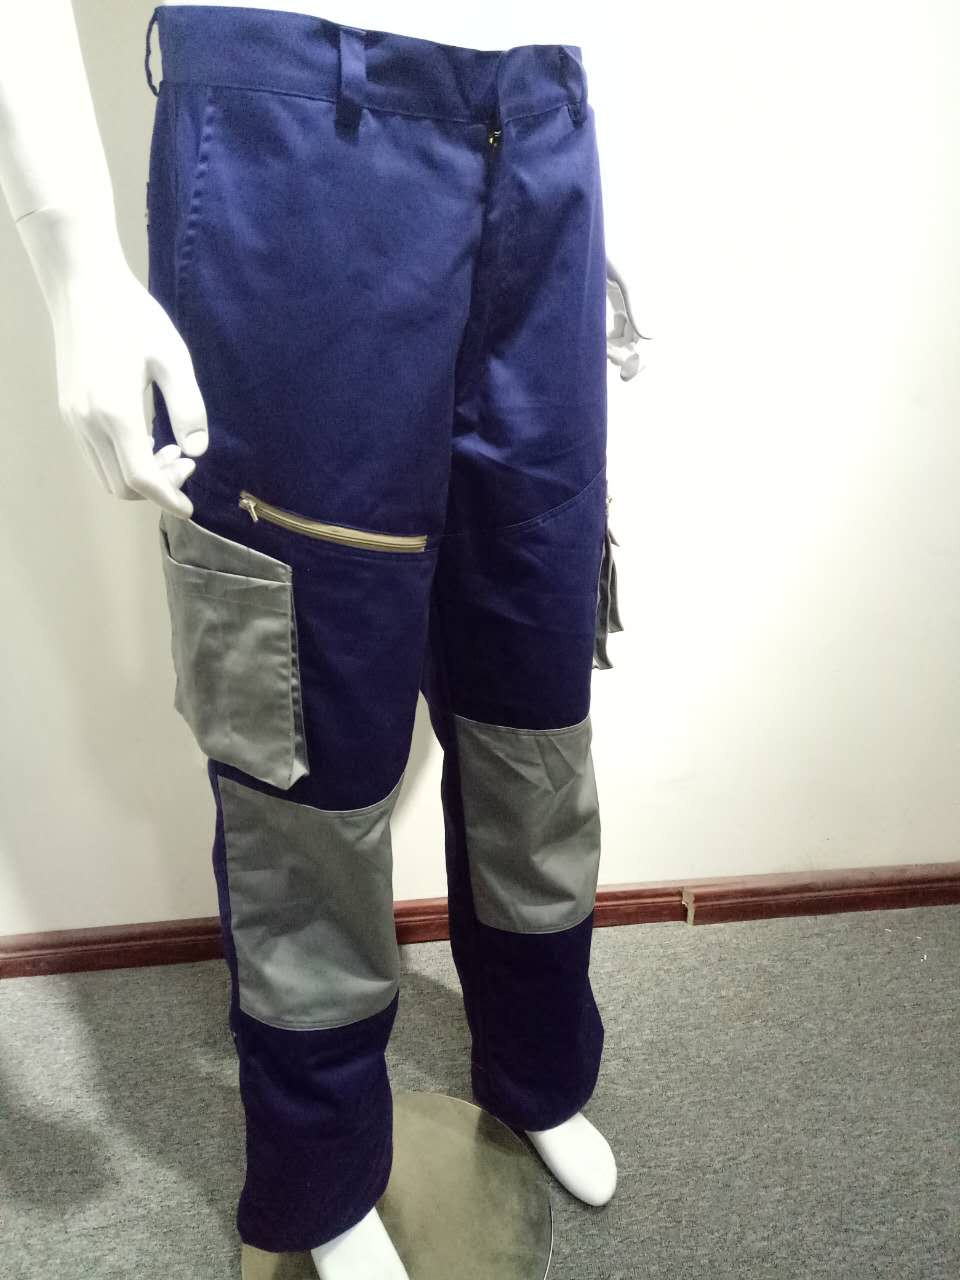 Navy Blue Black Khaki durable uniform pants